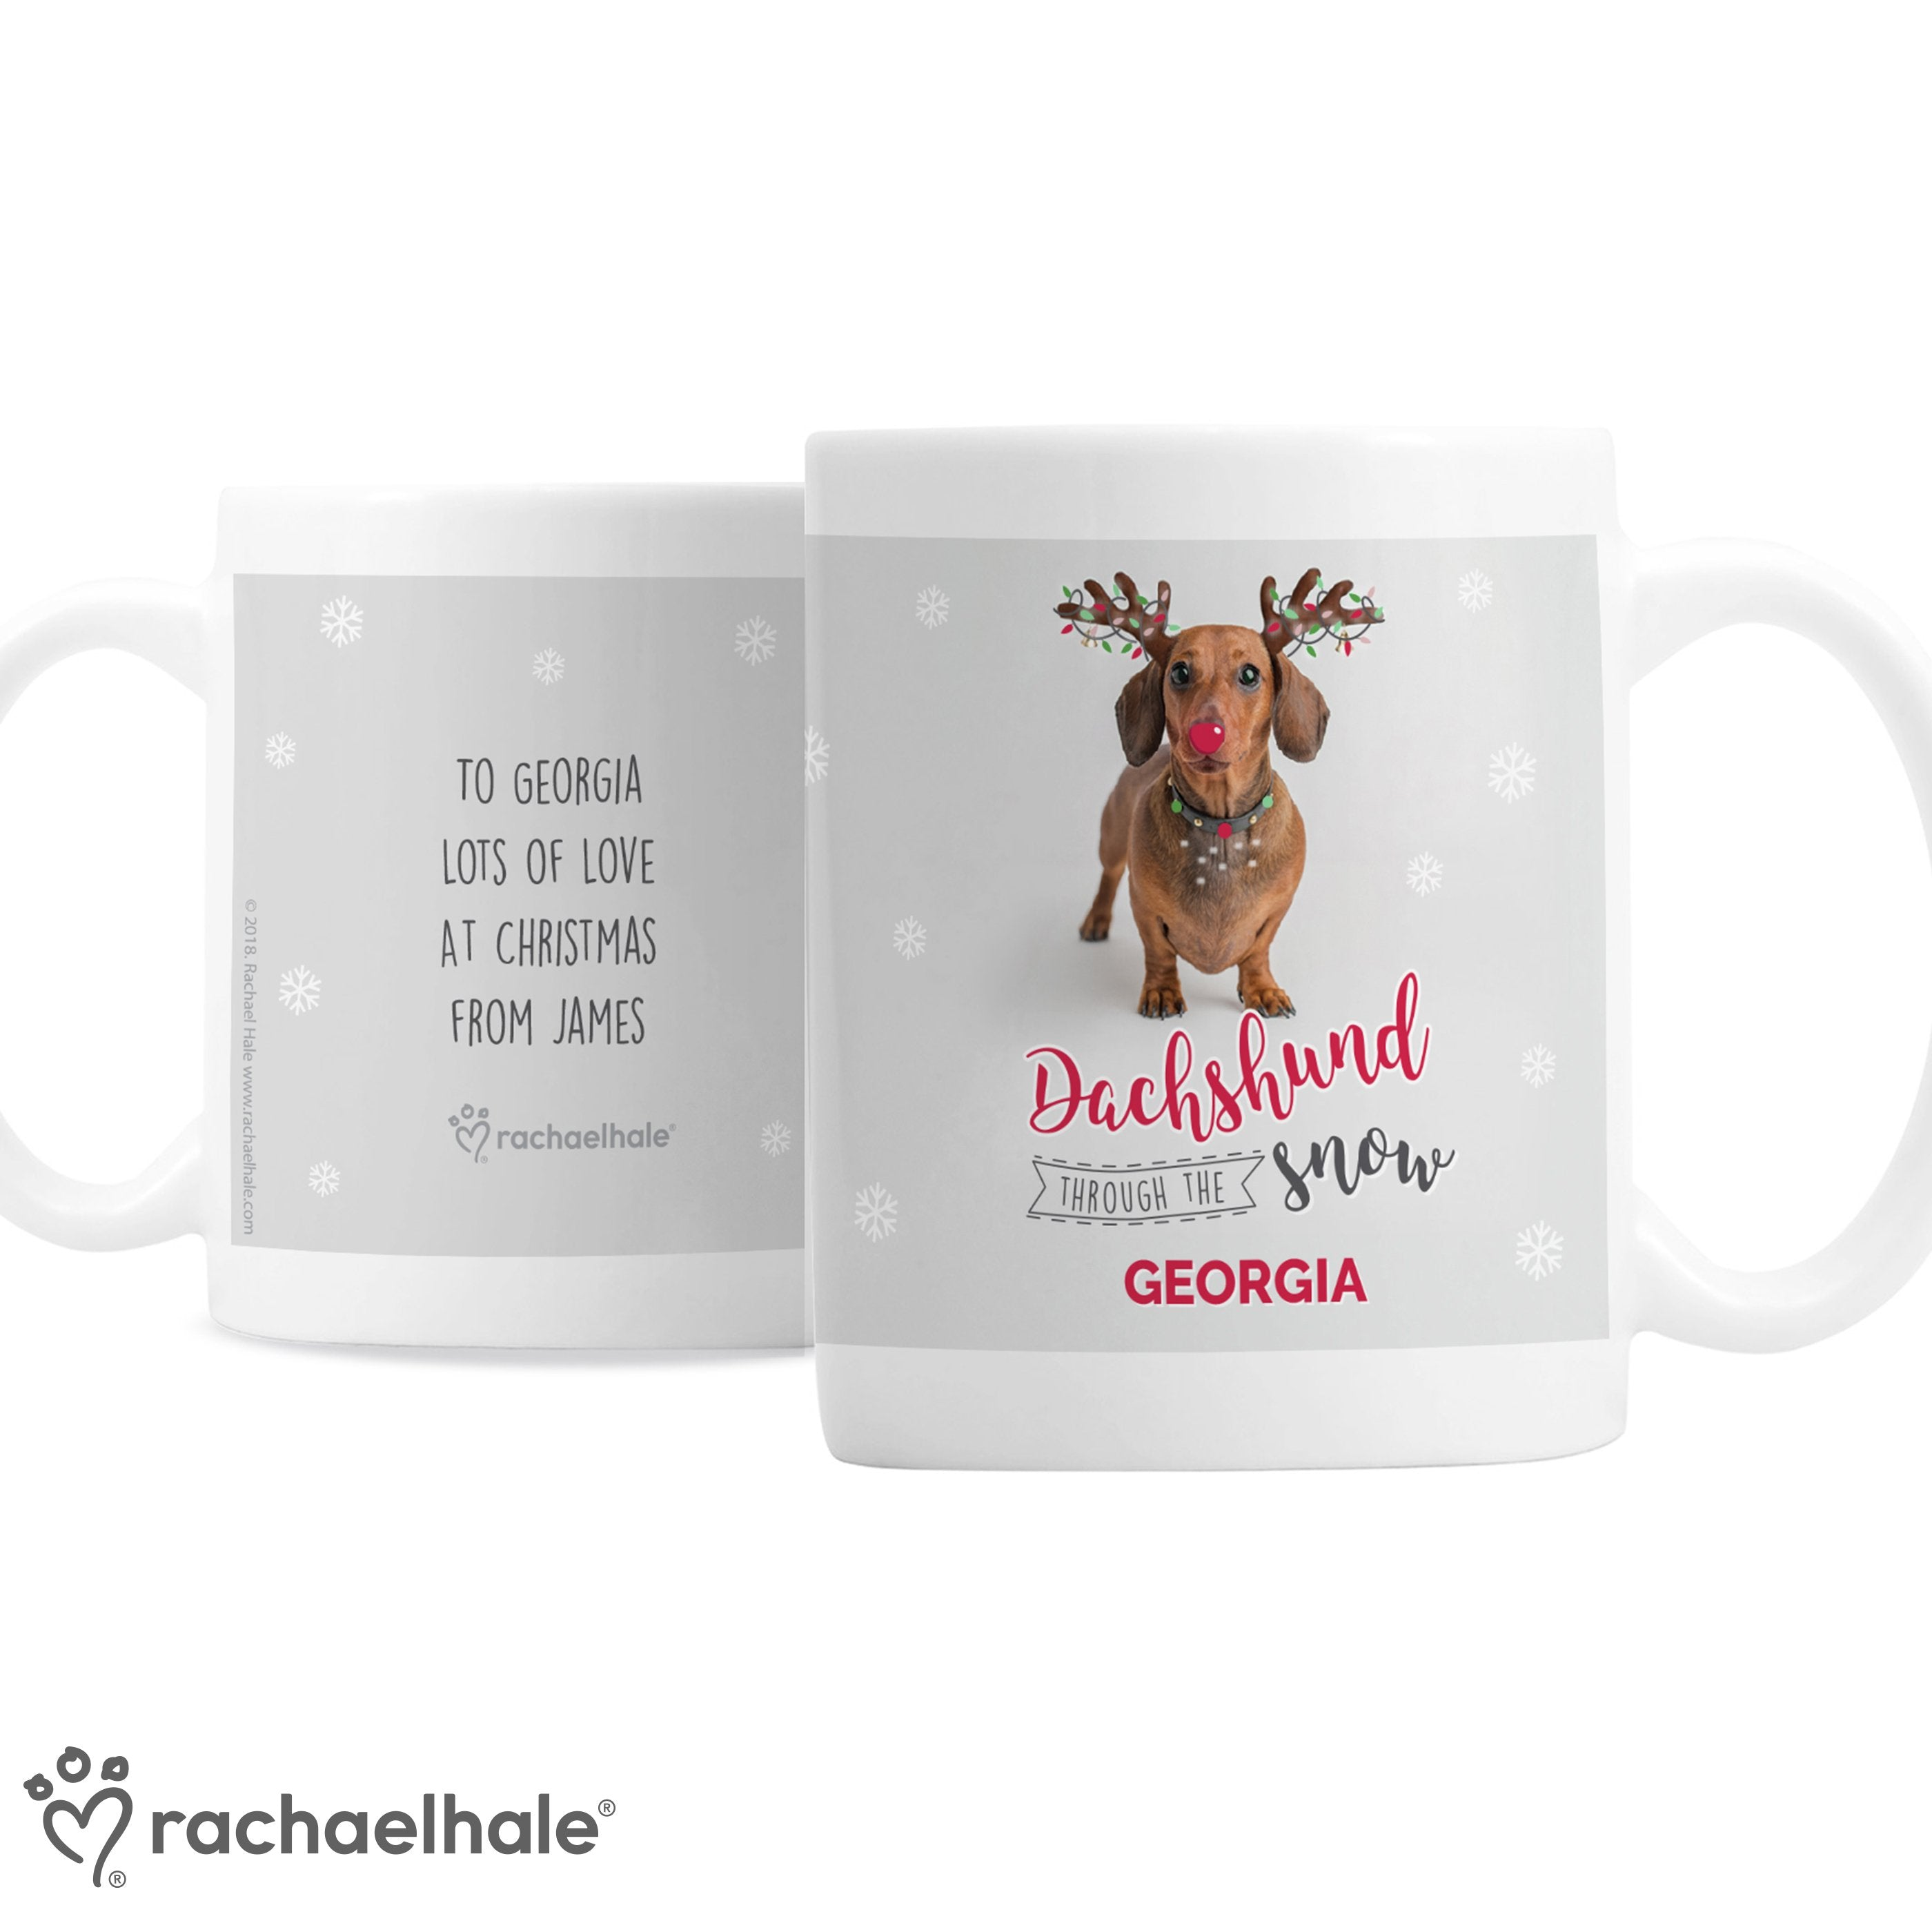 Personalised Rachael Hale Christmas Dachshund Through the Snow Ceramic Mug - Shop Personalised Gifts